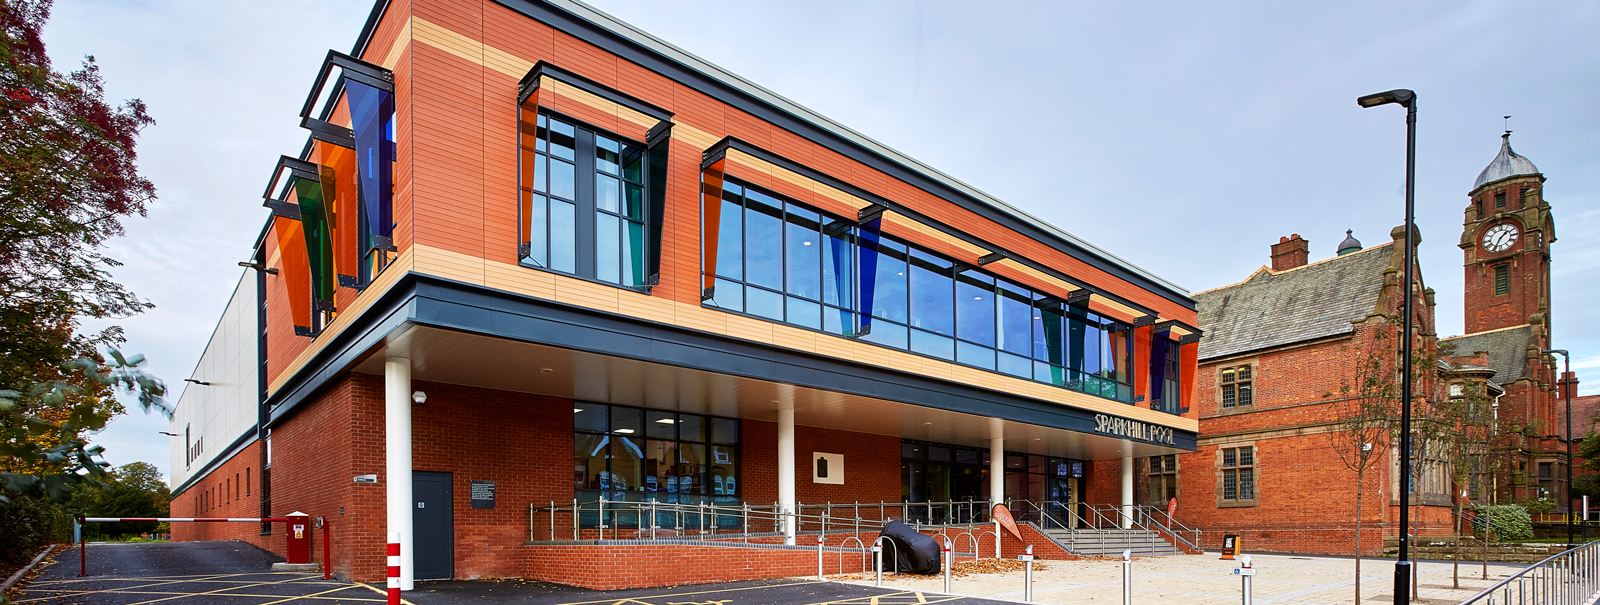 Sparkhill Leisure Centre